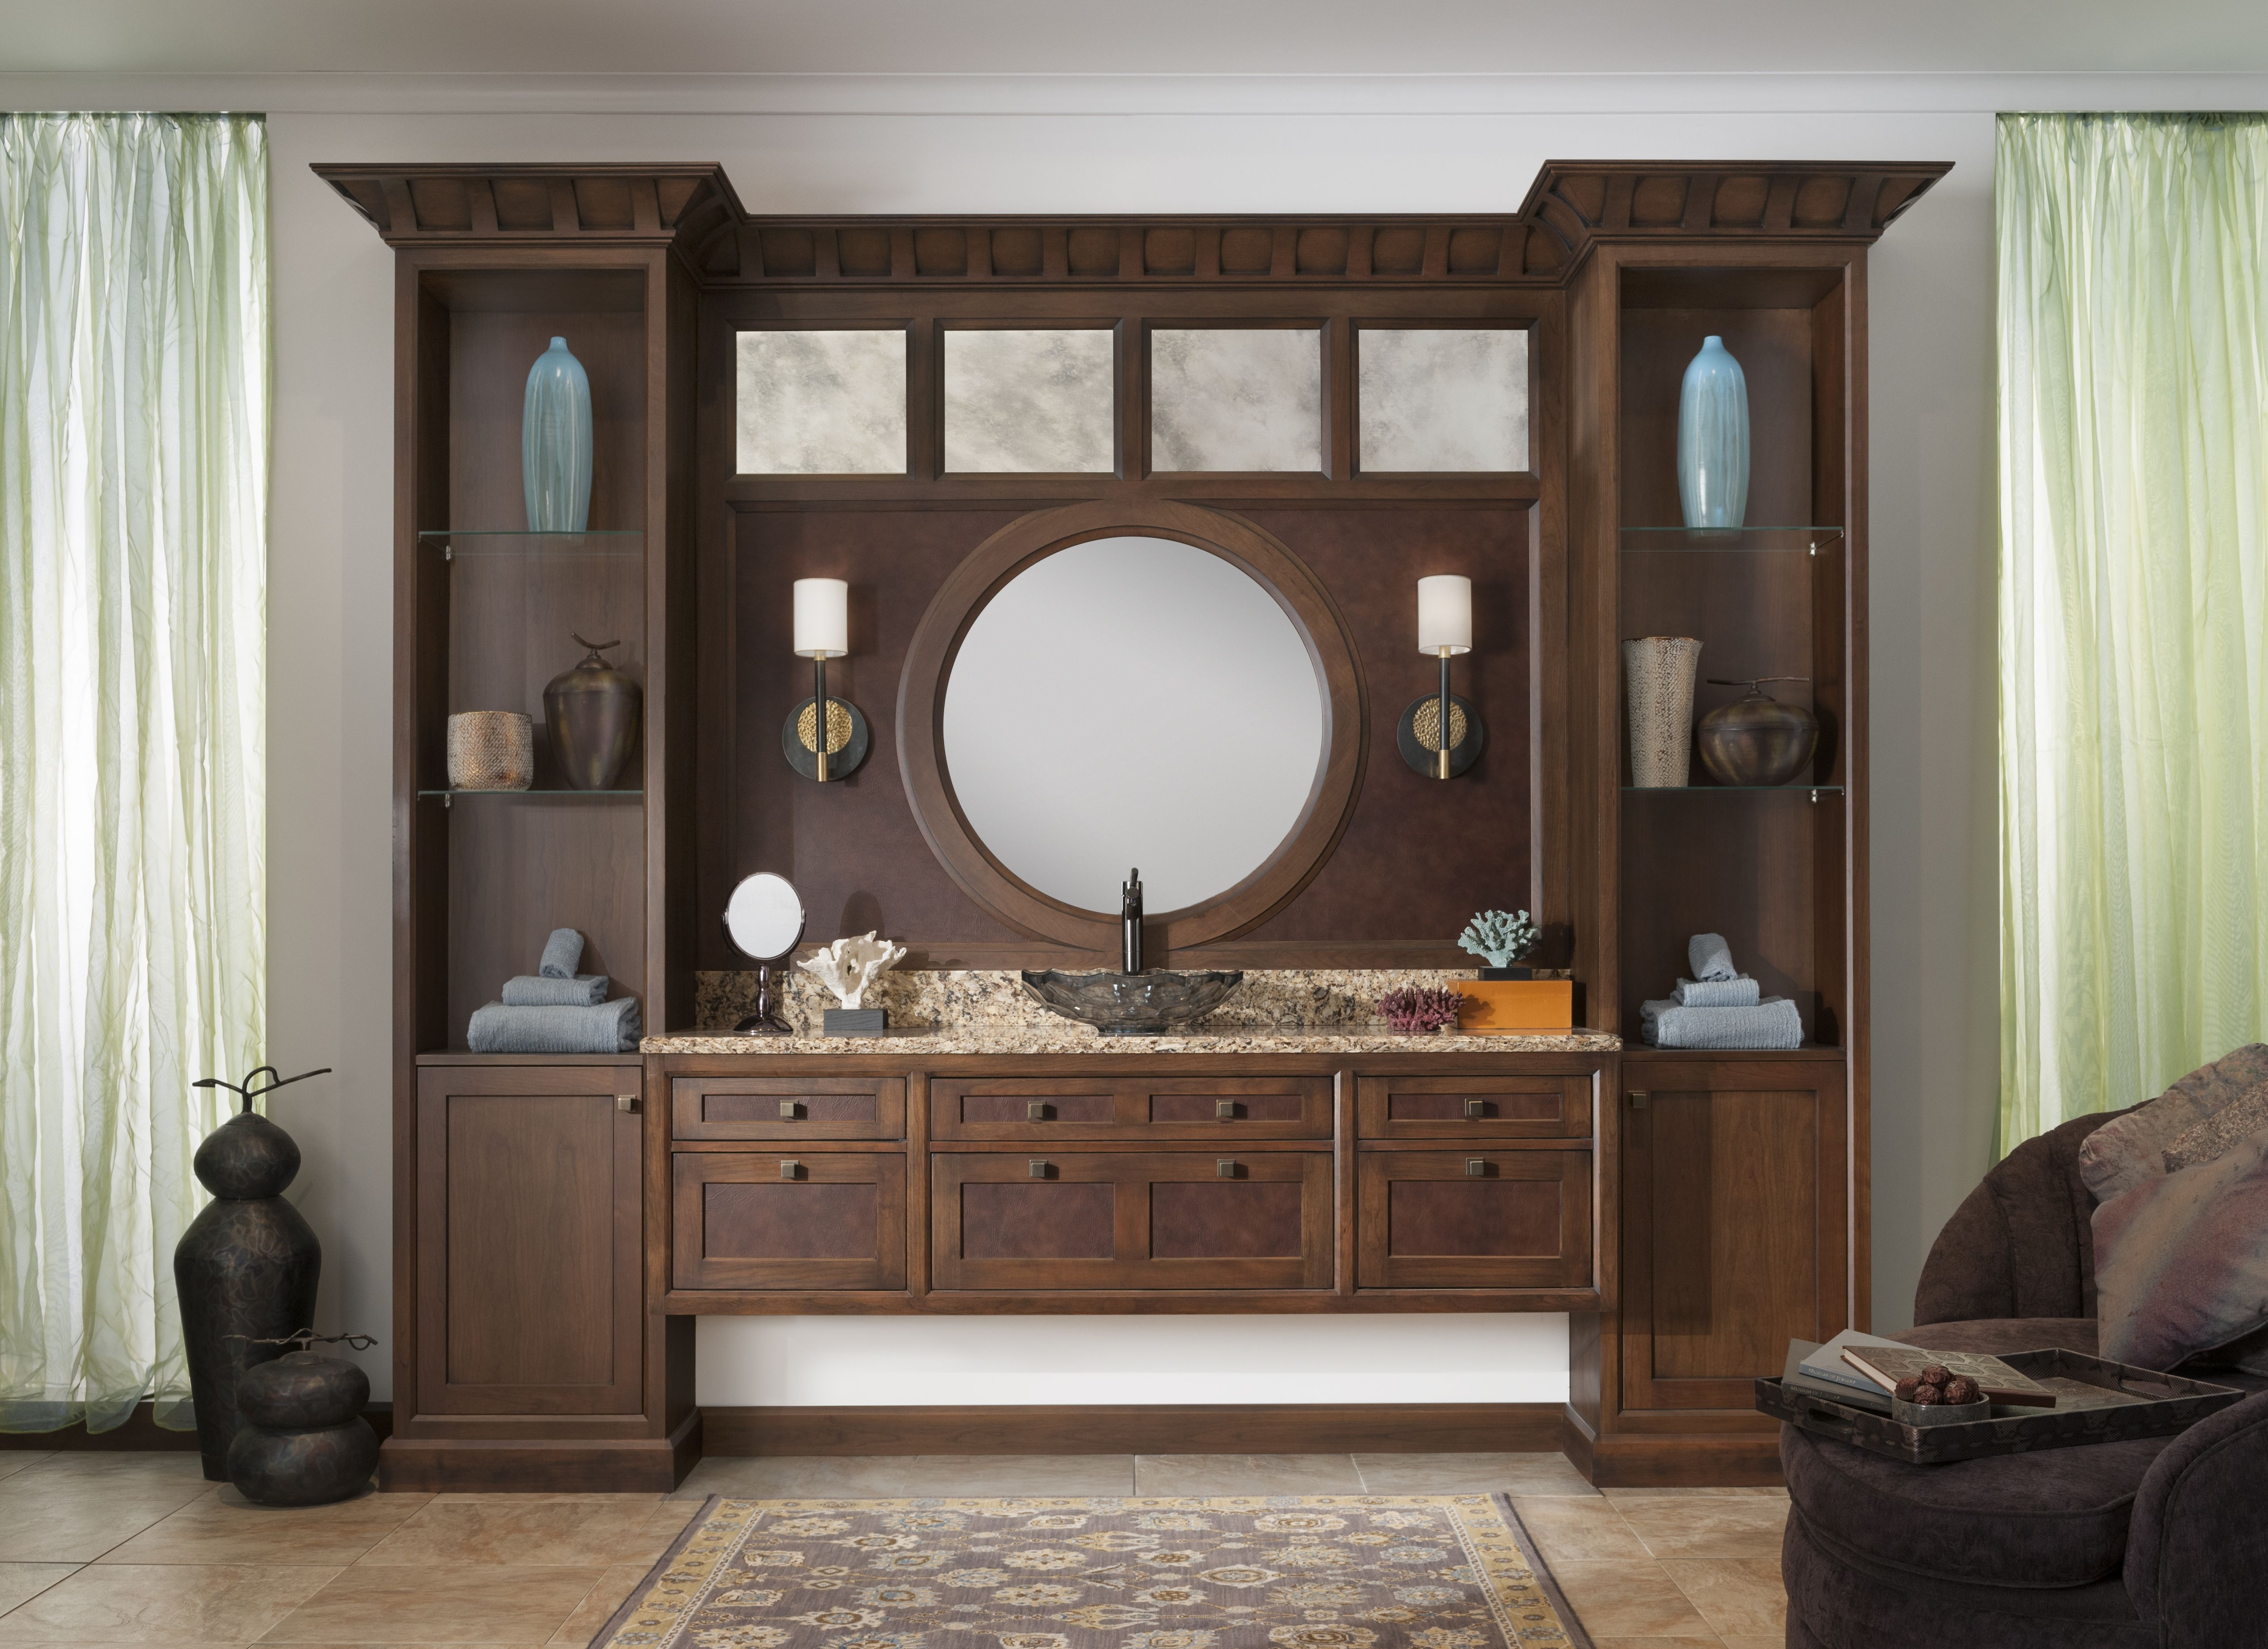 The Morningside Bath By Wood Mode Is Traditional With A Twist Antique Mirrors And Leather Drawer Inserts To Wood Mode Custom Cabinetry Kitchen And Bath Design